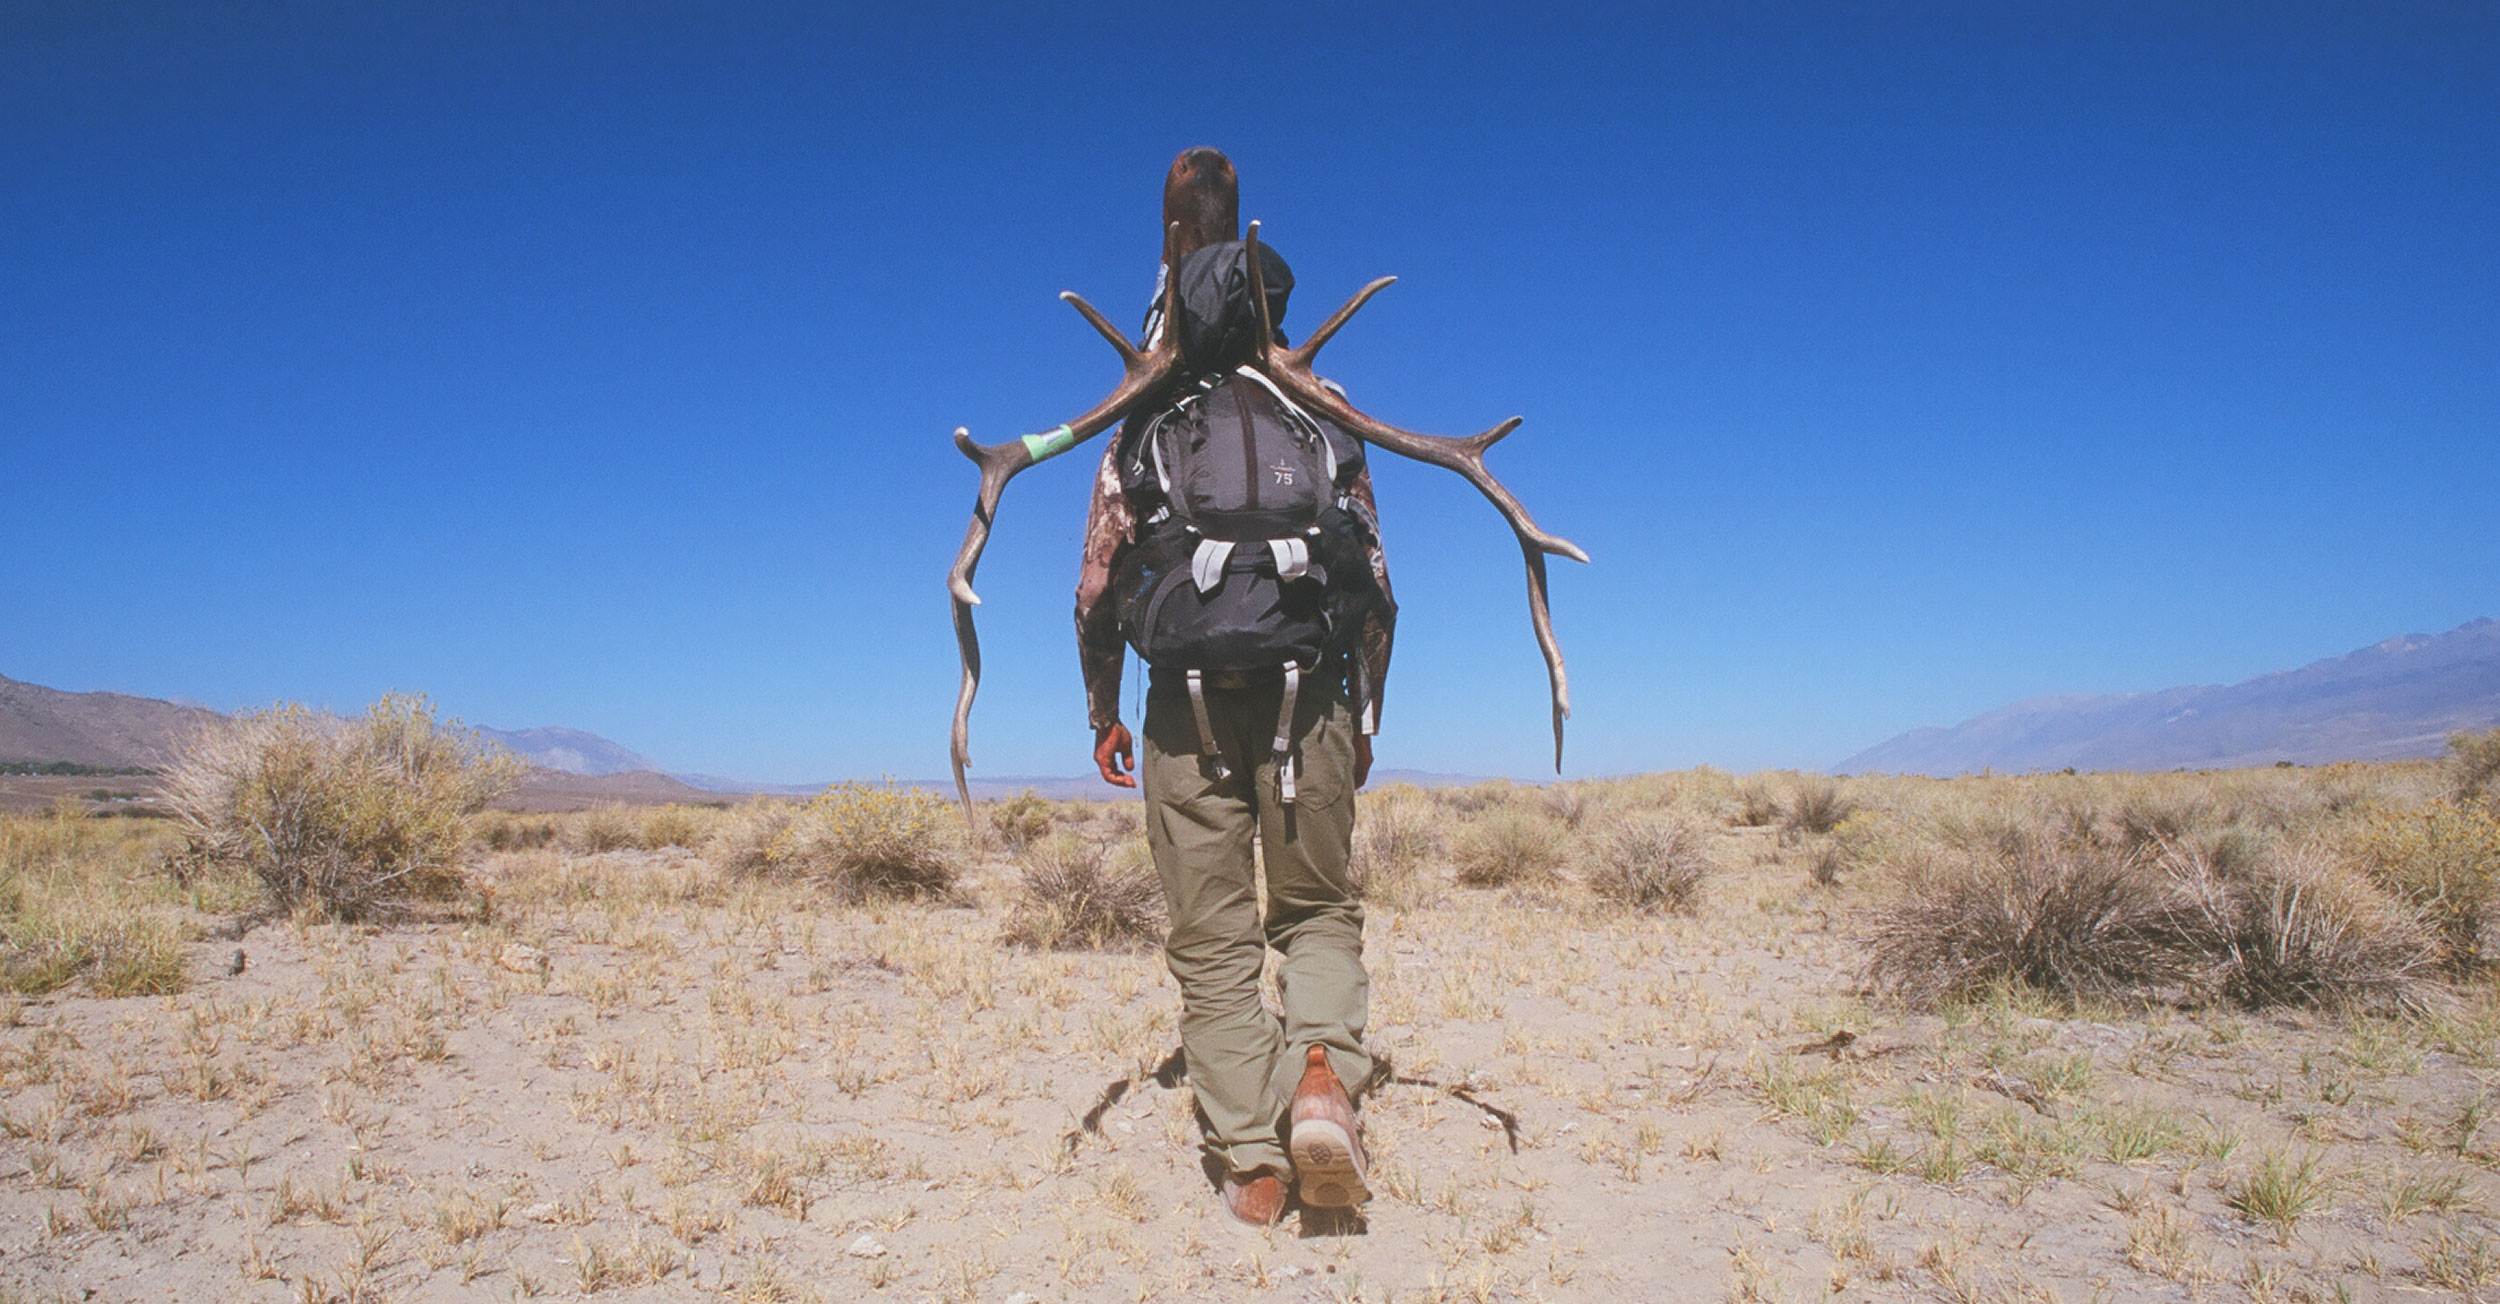 Kika Worldwide Outfitters, Tule Elk, Bighorn Sheep, California, Guides, Hunting